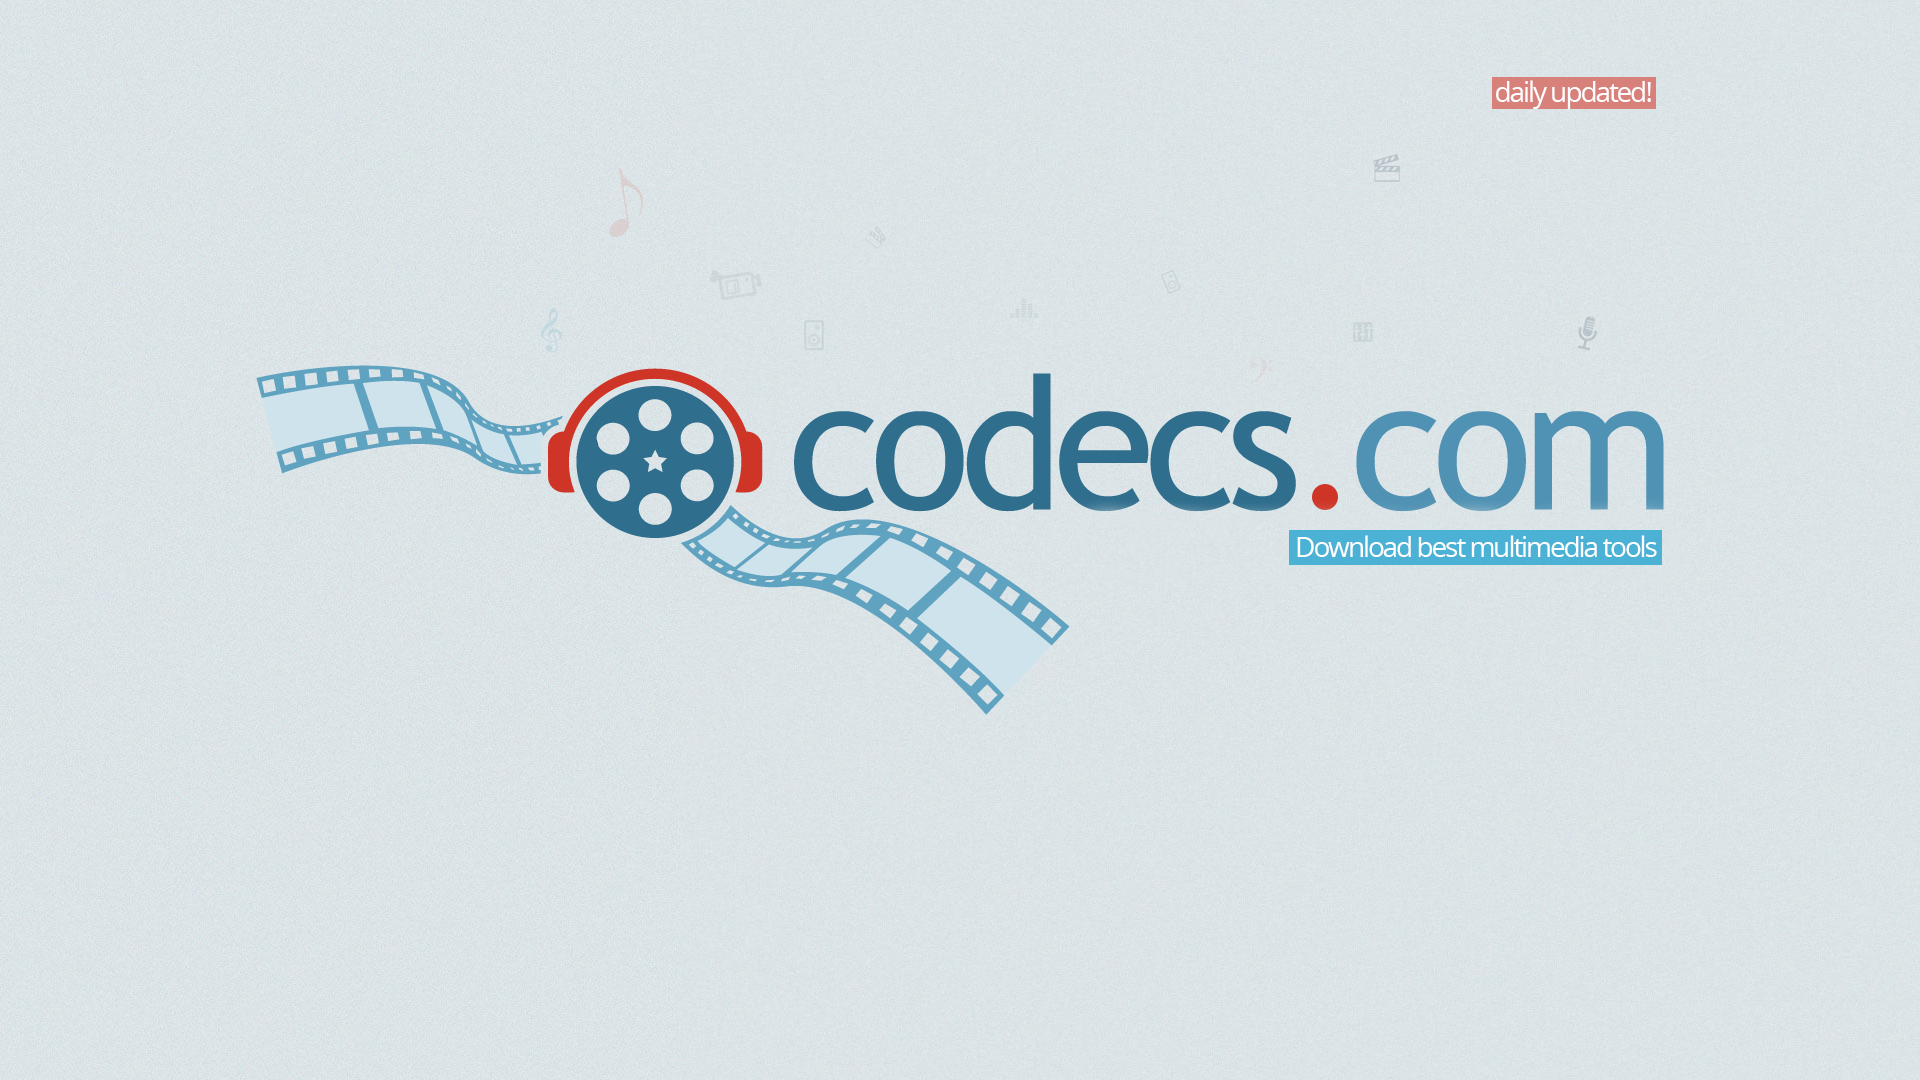 CODECS.COM : Download the latest codecs and tools, FREE!